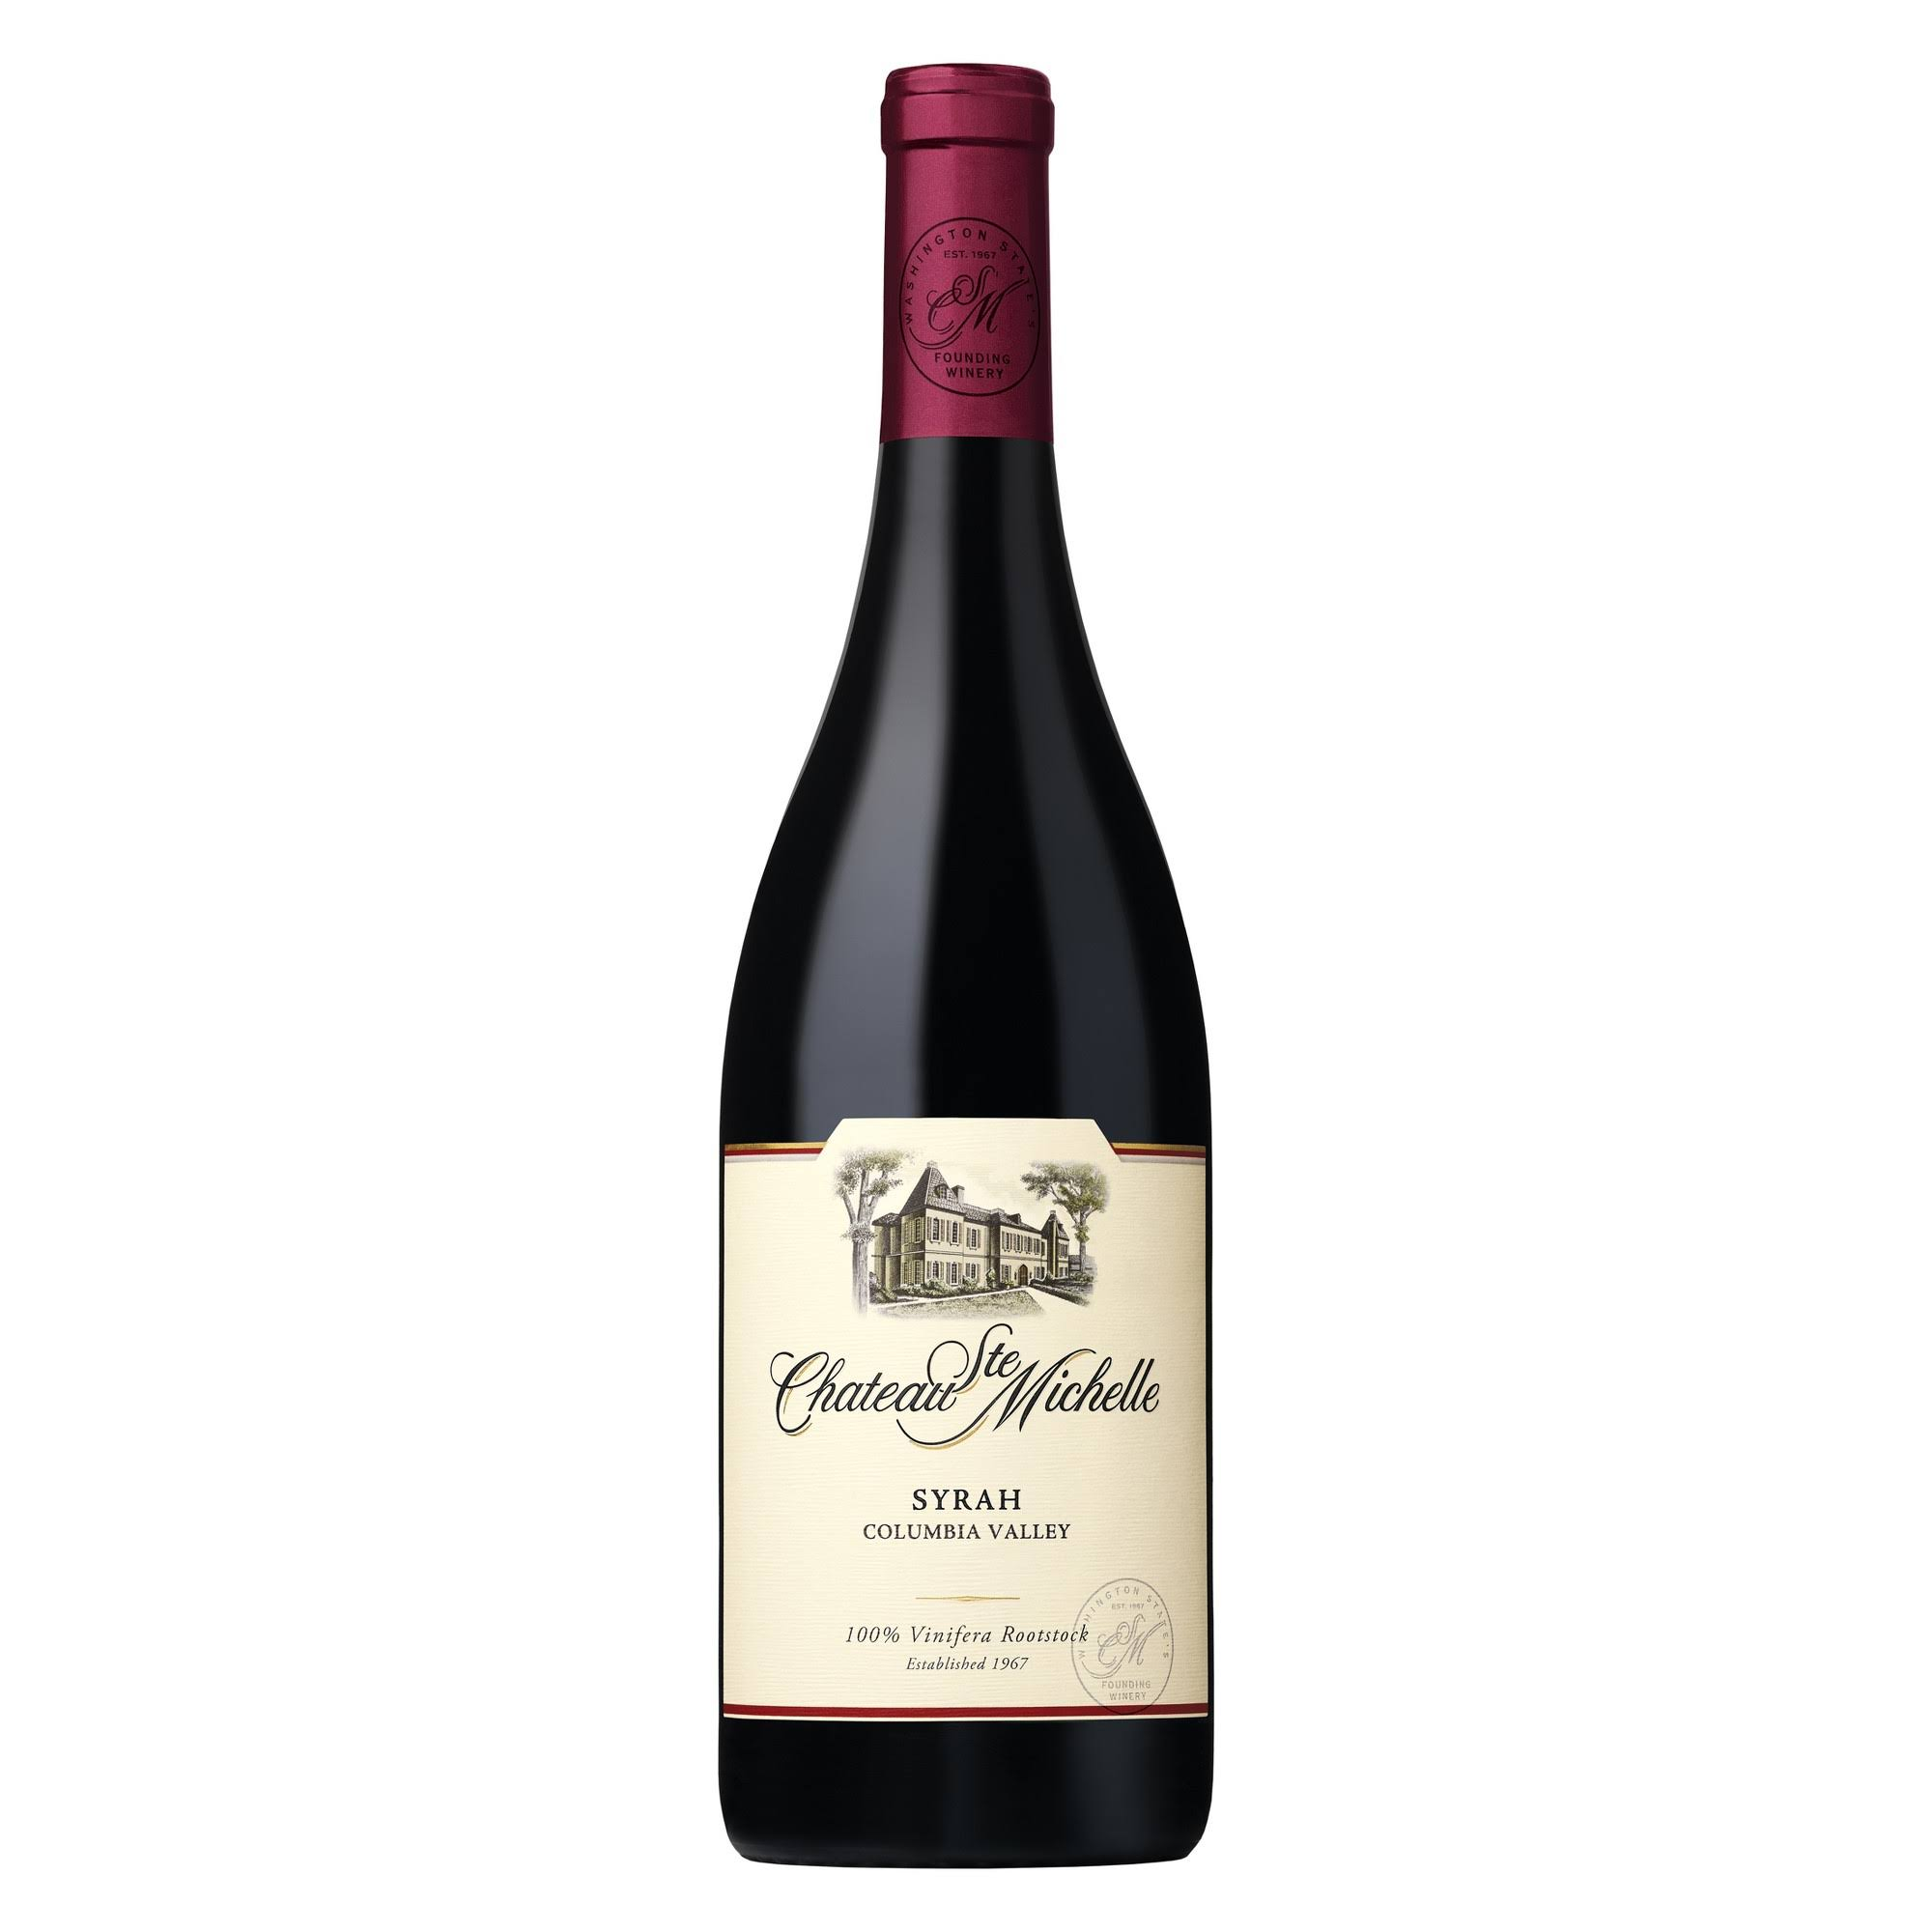 Chateau Ste Michelle Syrah, Columbia Valley (Vintage Varies) - 750 ml bottle